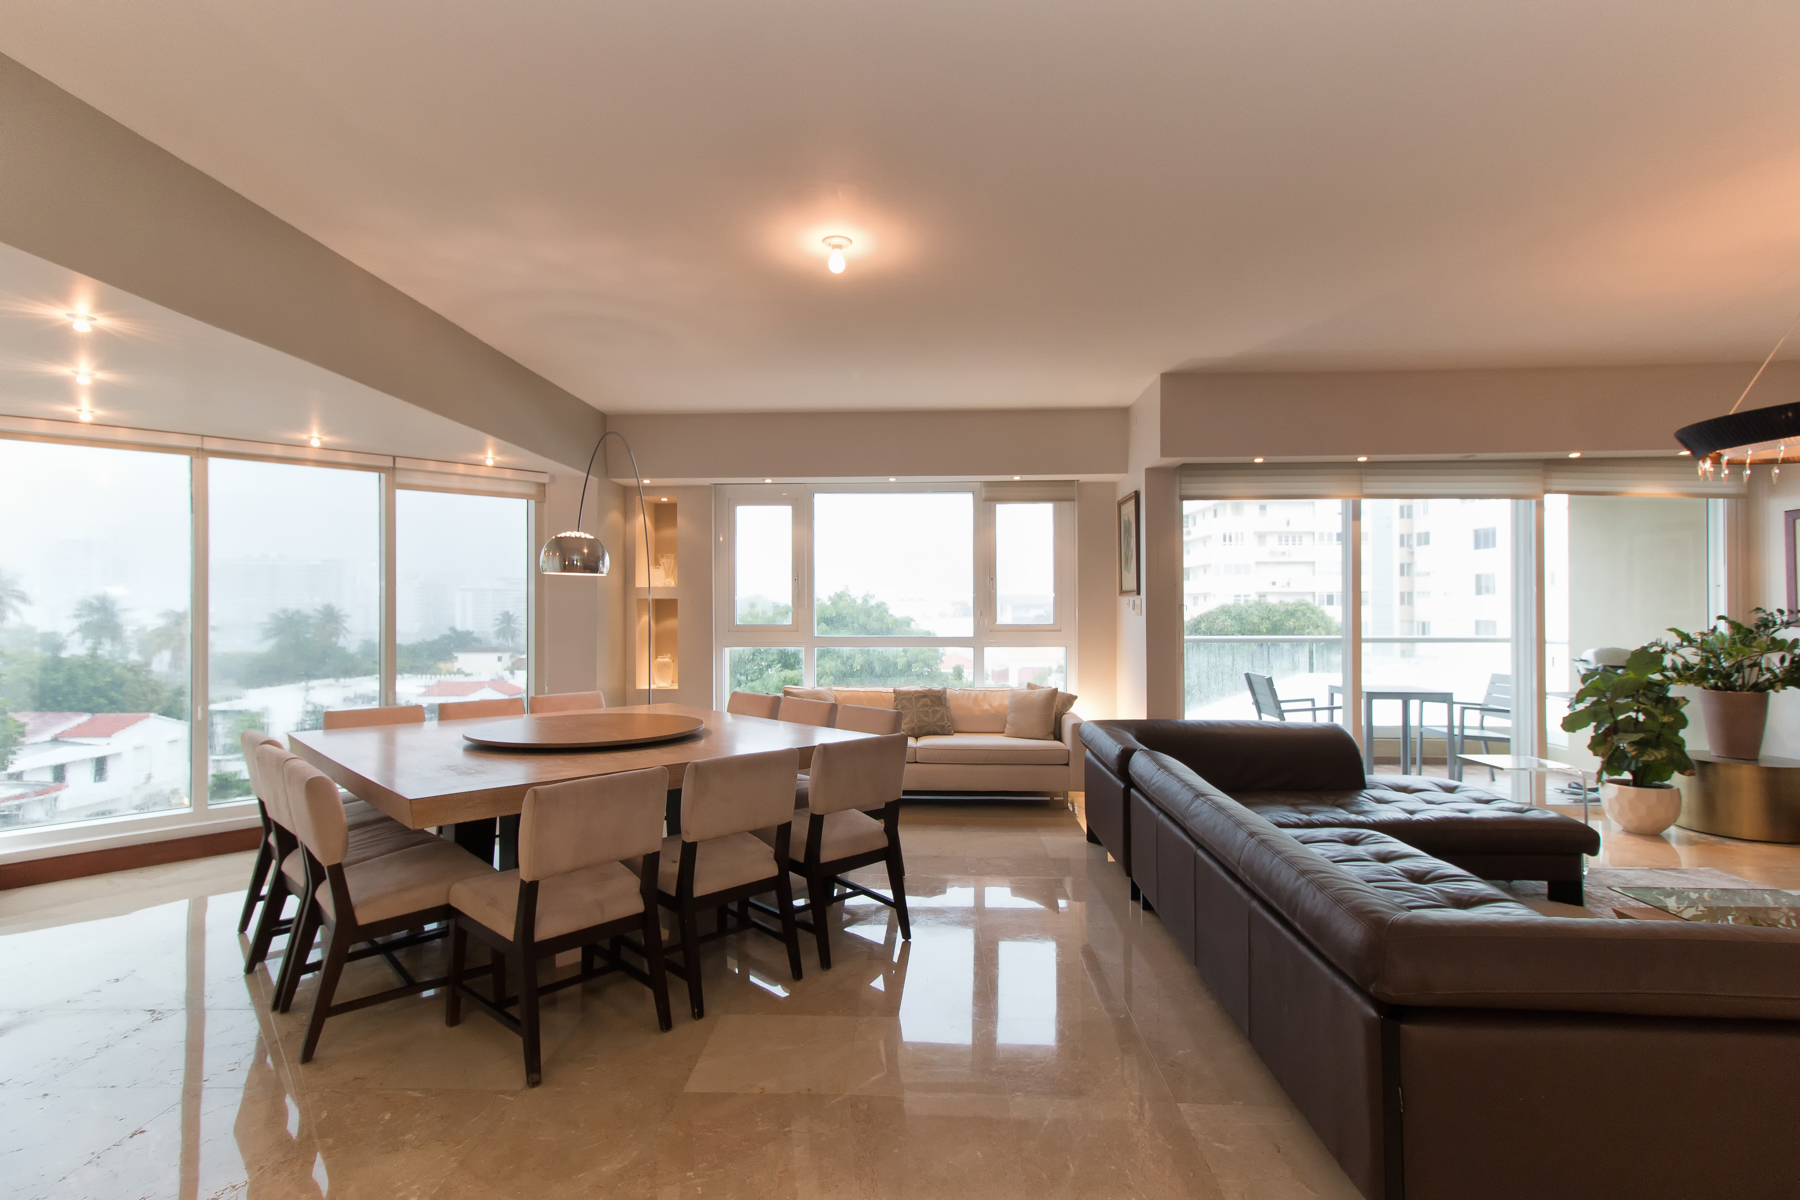 Additional photo for property listing at Elegant Four Bedroom at The Excelsior 805 Ponce De Leon Avenue Apt 302 San Juan, Puerto Rico 00907 Puerto Rico